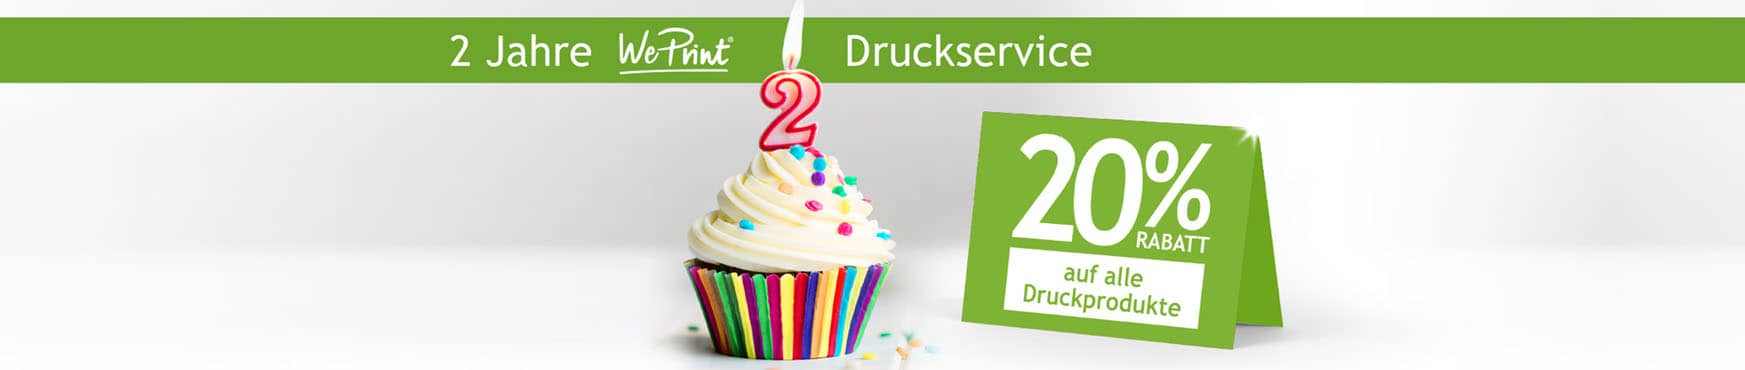 20% Rabatt auf alle Produkte - Avery Zweckform WePrint Birthday Sale